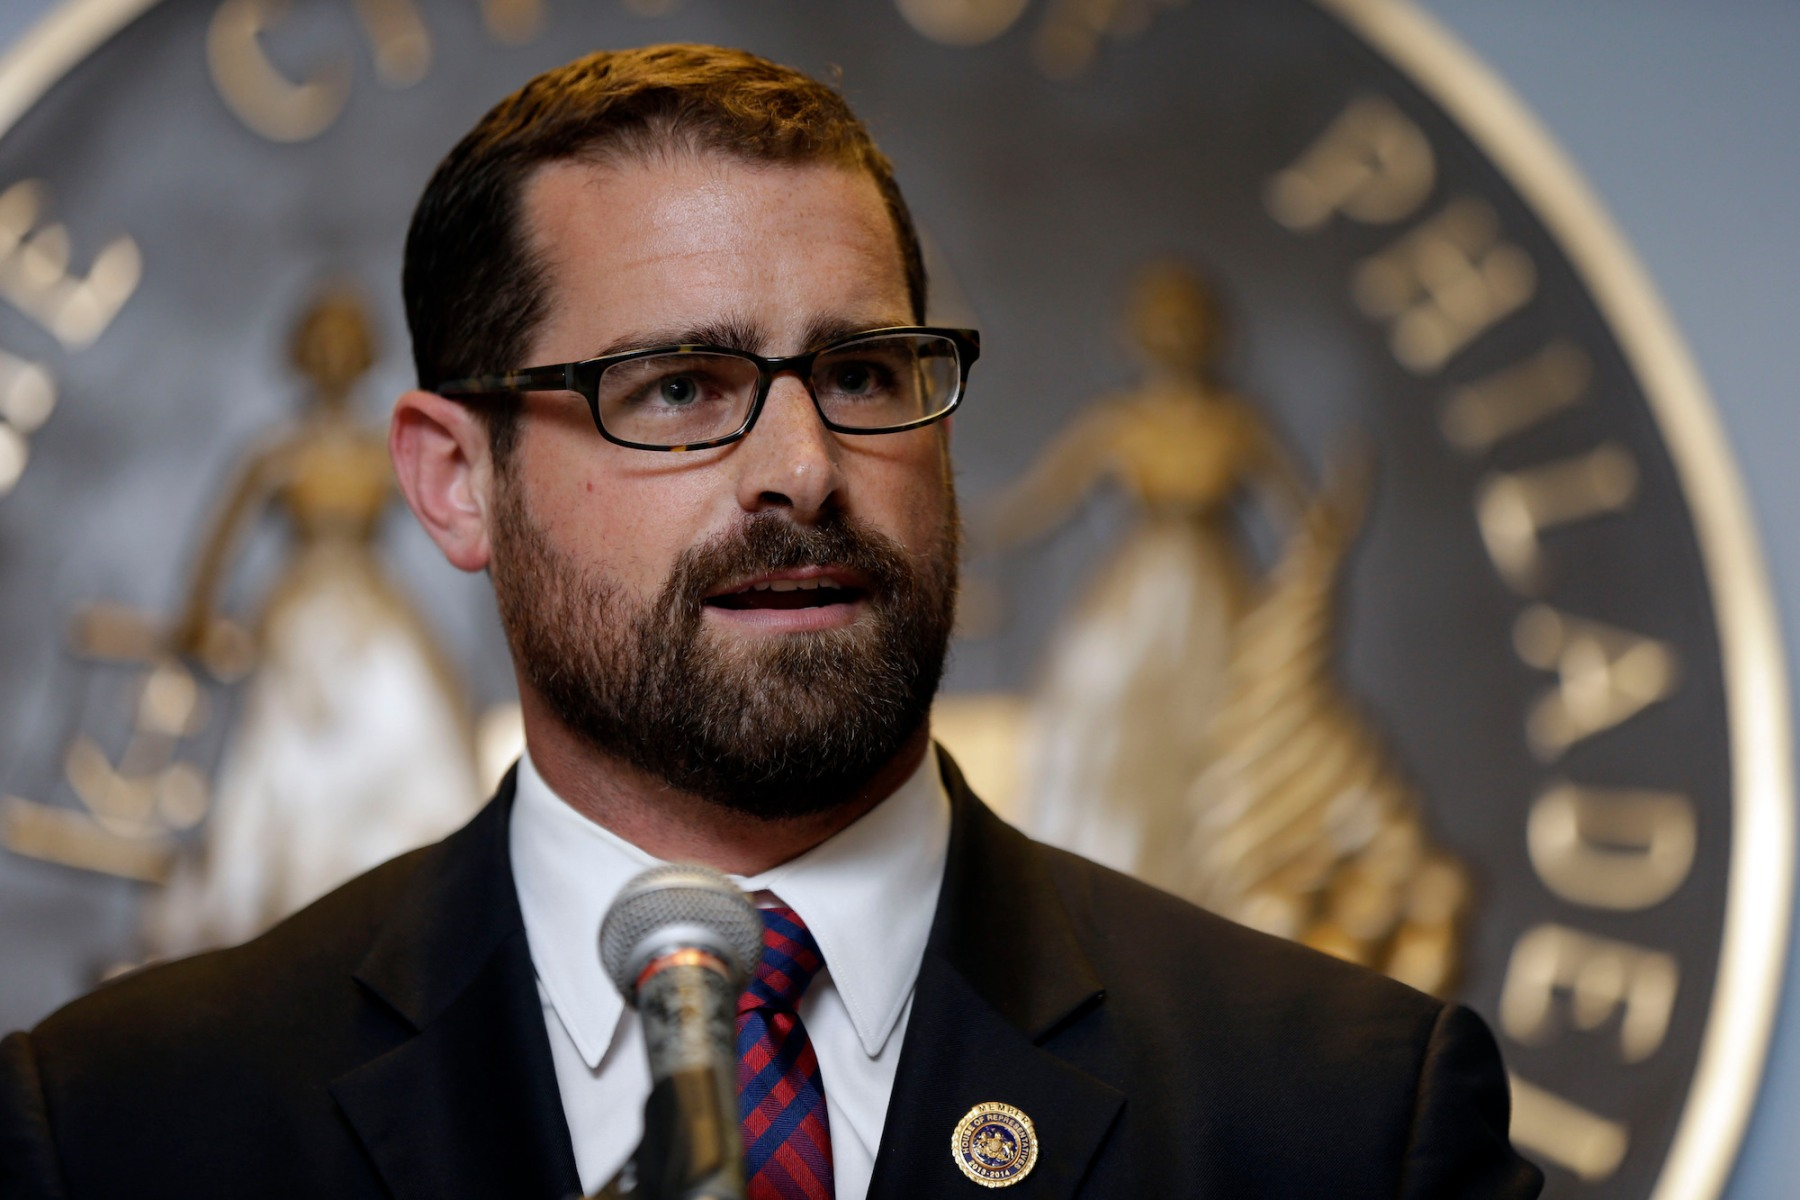 Brian Sims State Rep. Brian Sims D-Philadelphia speaks before Mayor Michael Nutter signs legislation that broadens equality protections for lesbian, gay, bisexual, and transgender people living and working in Philadelphia. Across the country, this week's landmark Supreme Court rulings on same-sex marriage have energized activists and politicians on both sides of the debateGay Marriage State Battlegrounds, Philadelphia, USA